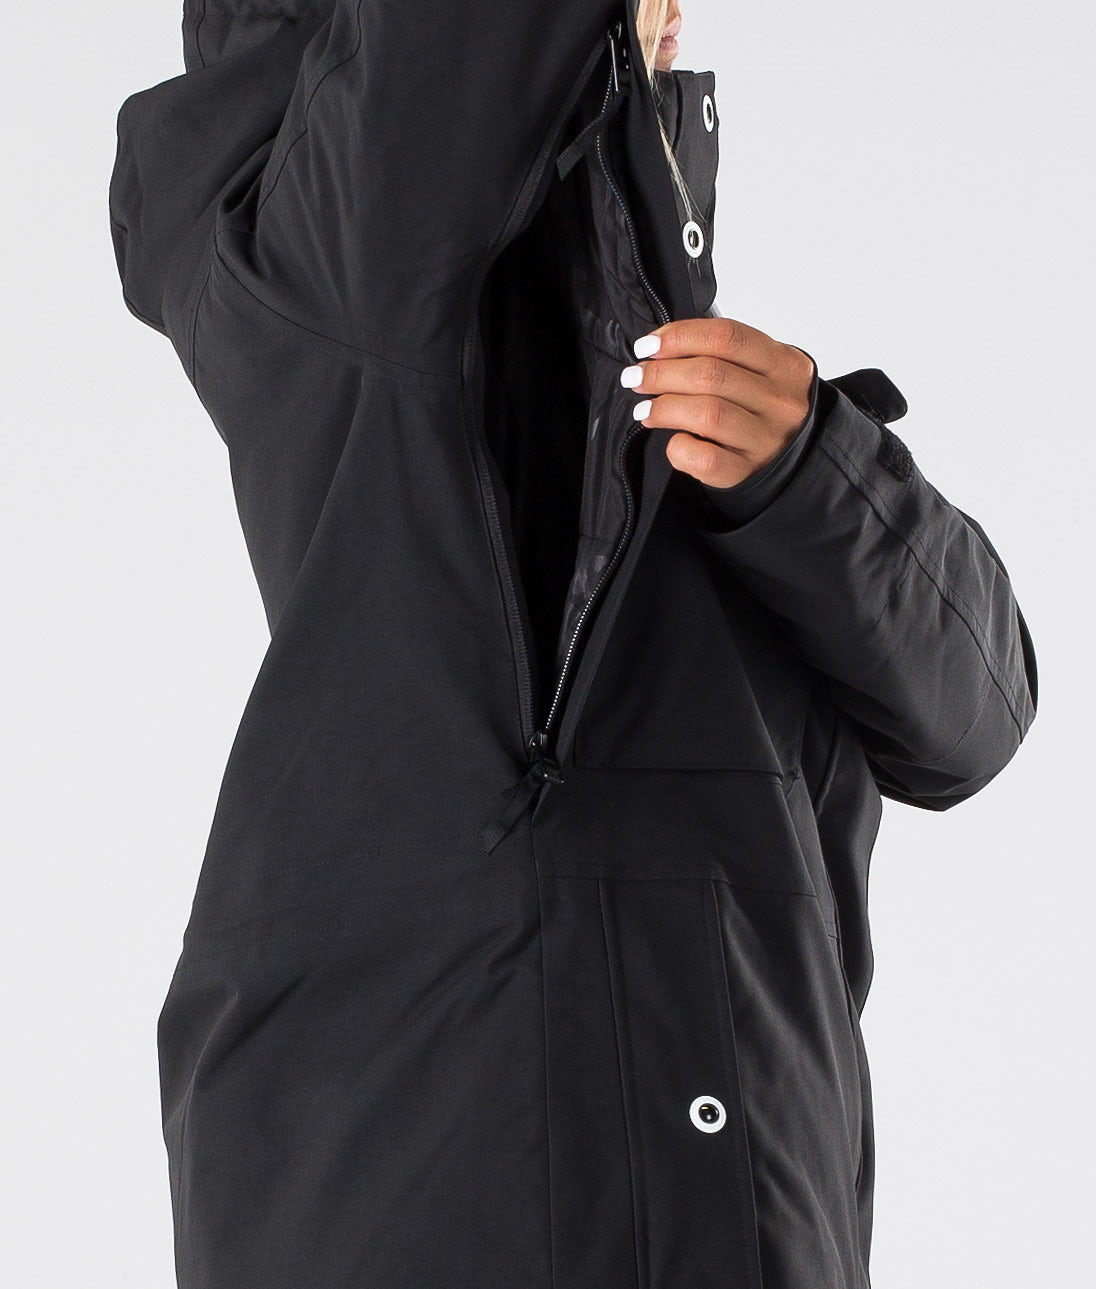 Buy Adept W Snowboard Jacket from Dope at Ridestore.com - Always free shipping, free returns and 30 days money back guarantee